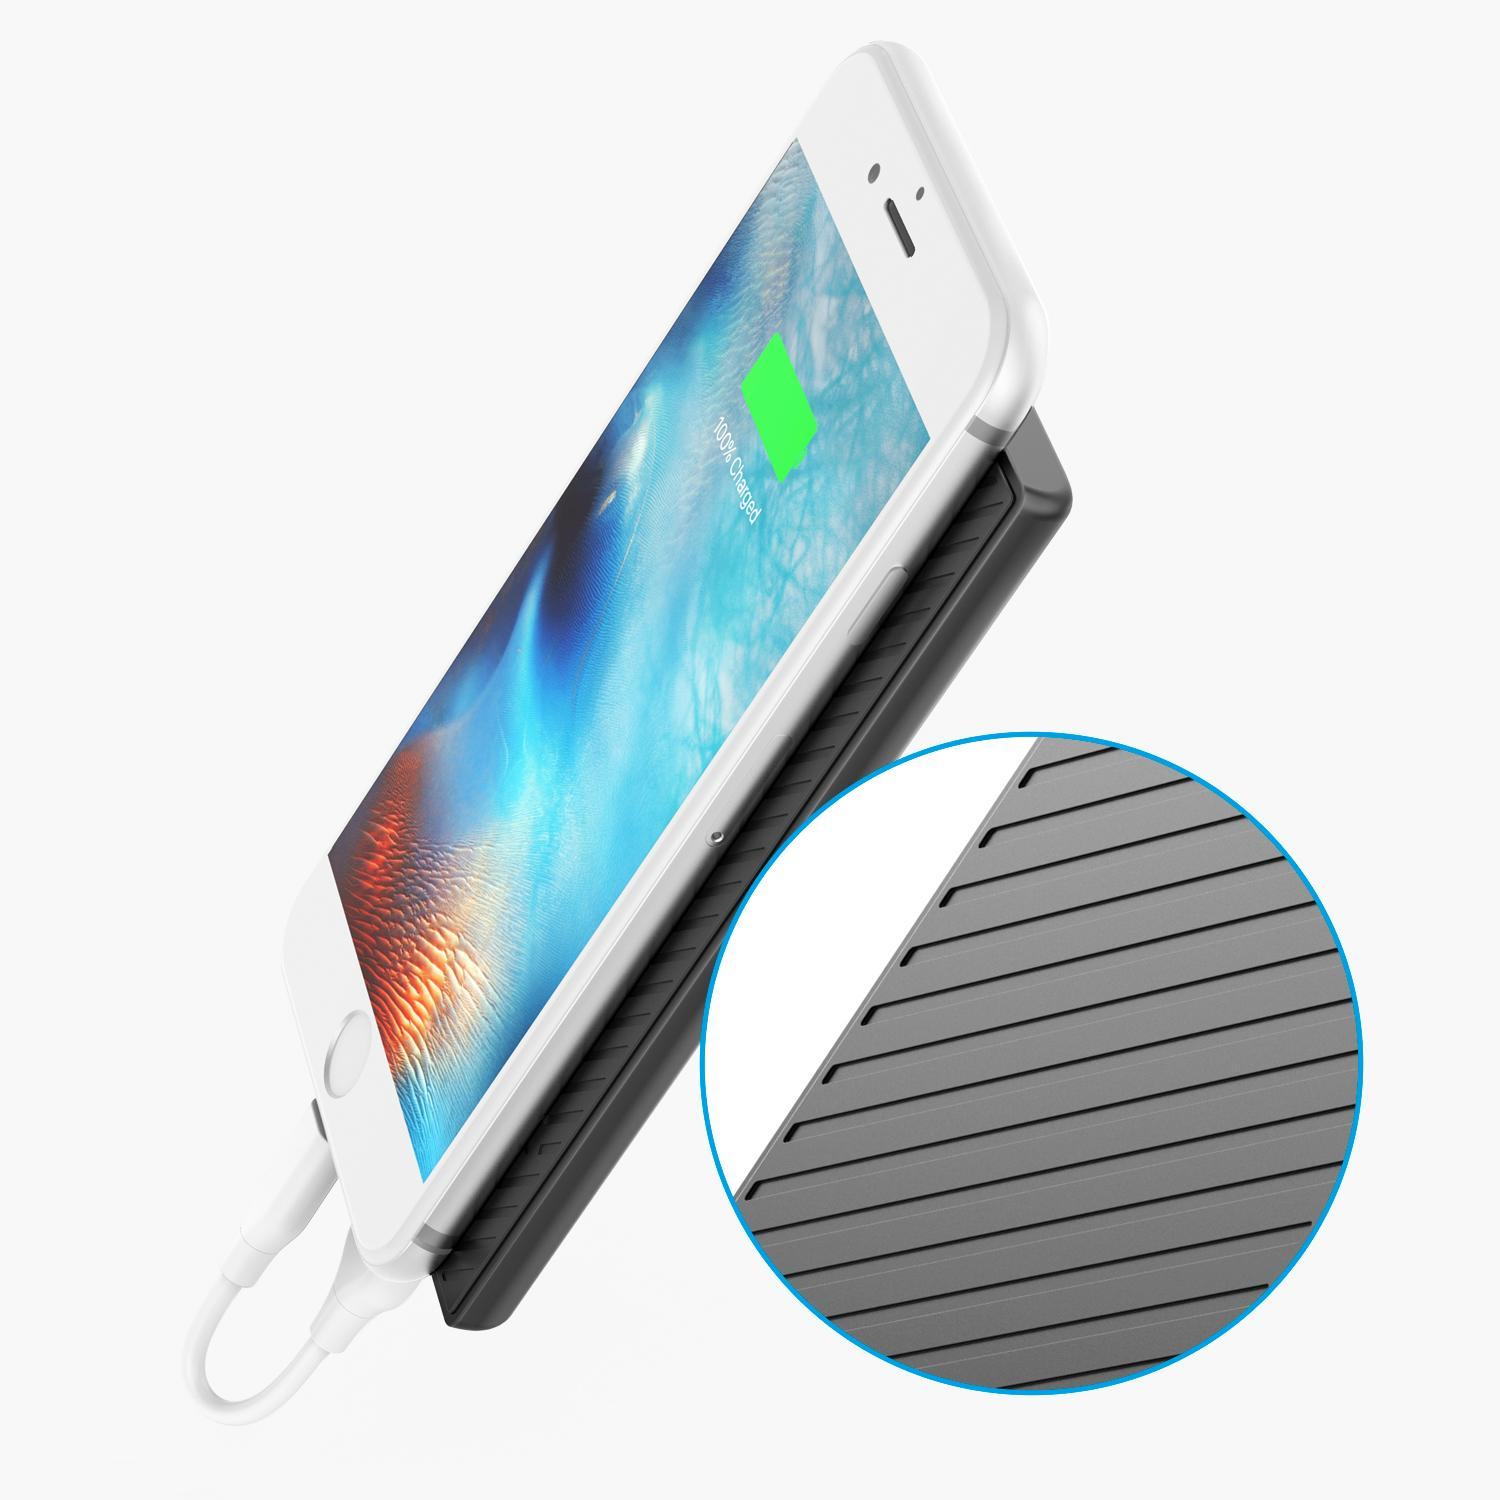 Anker PowerCore Slim 5000 Portable Charger, Ultra Slim External Battery  with iPhone battery technology and Fast-Charging PowerIQ, Pocket Friendly